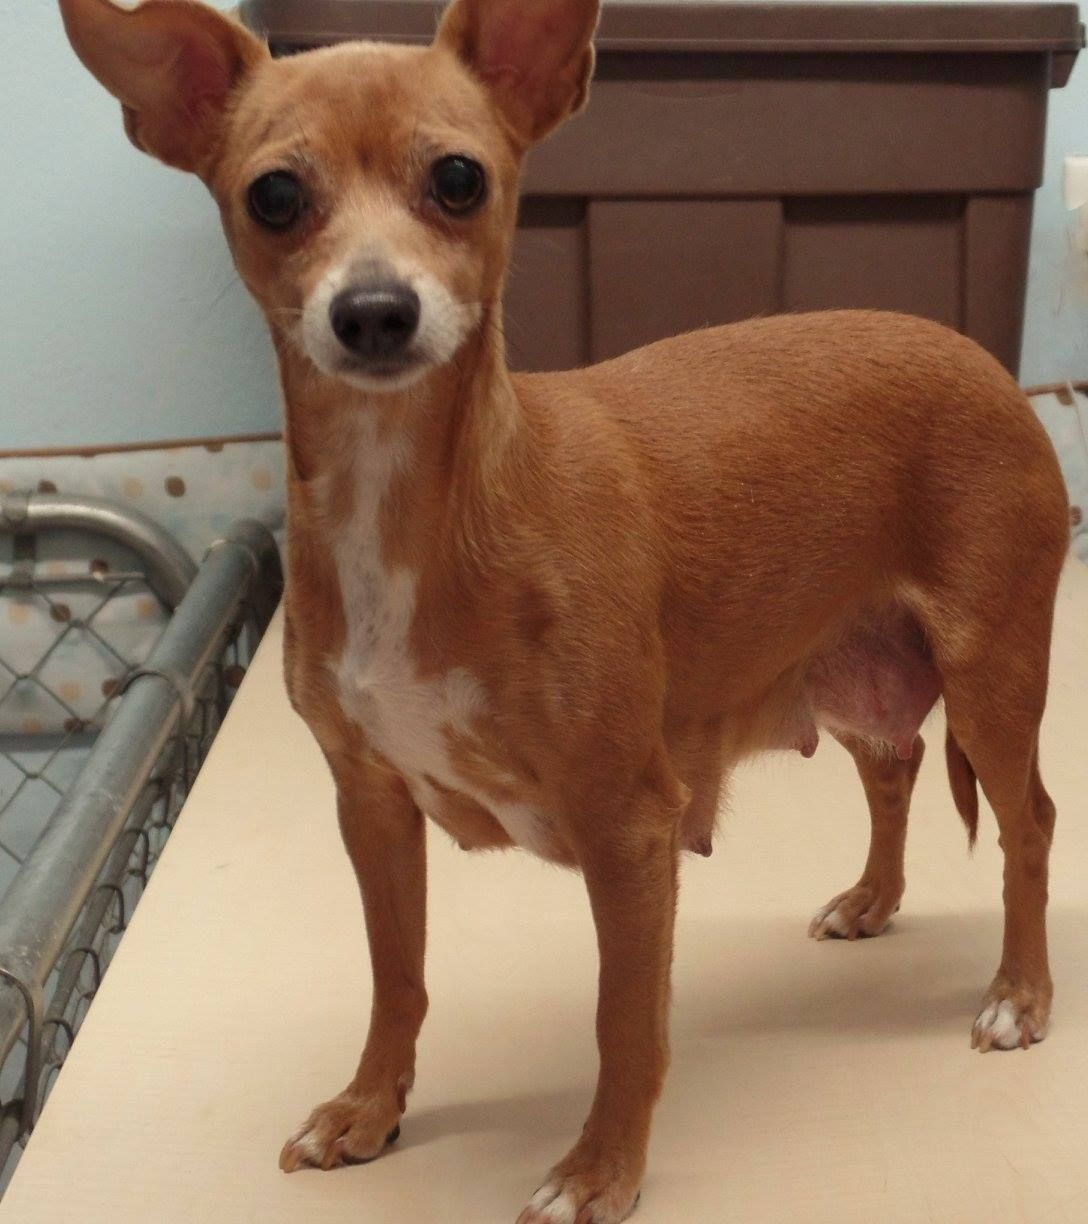 meet lolly - an adoptable pet dog   rescue & adopt our animals